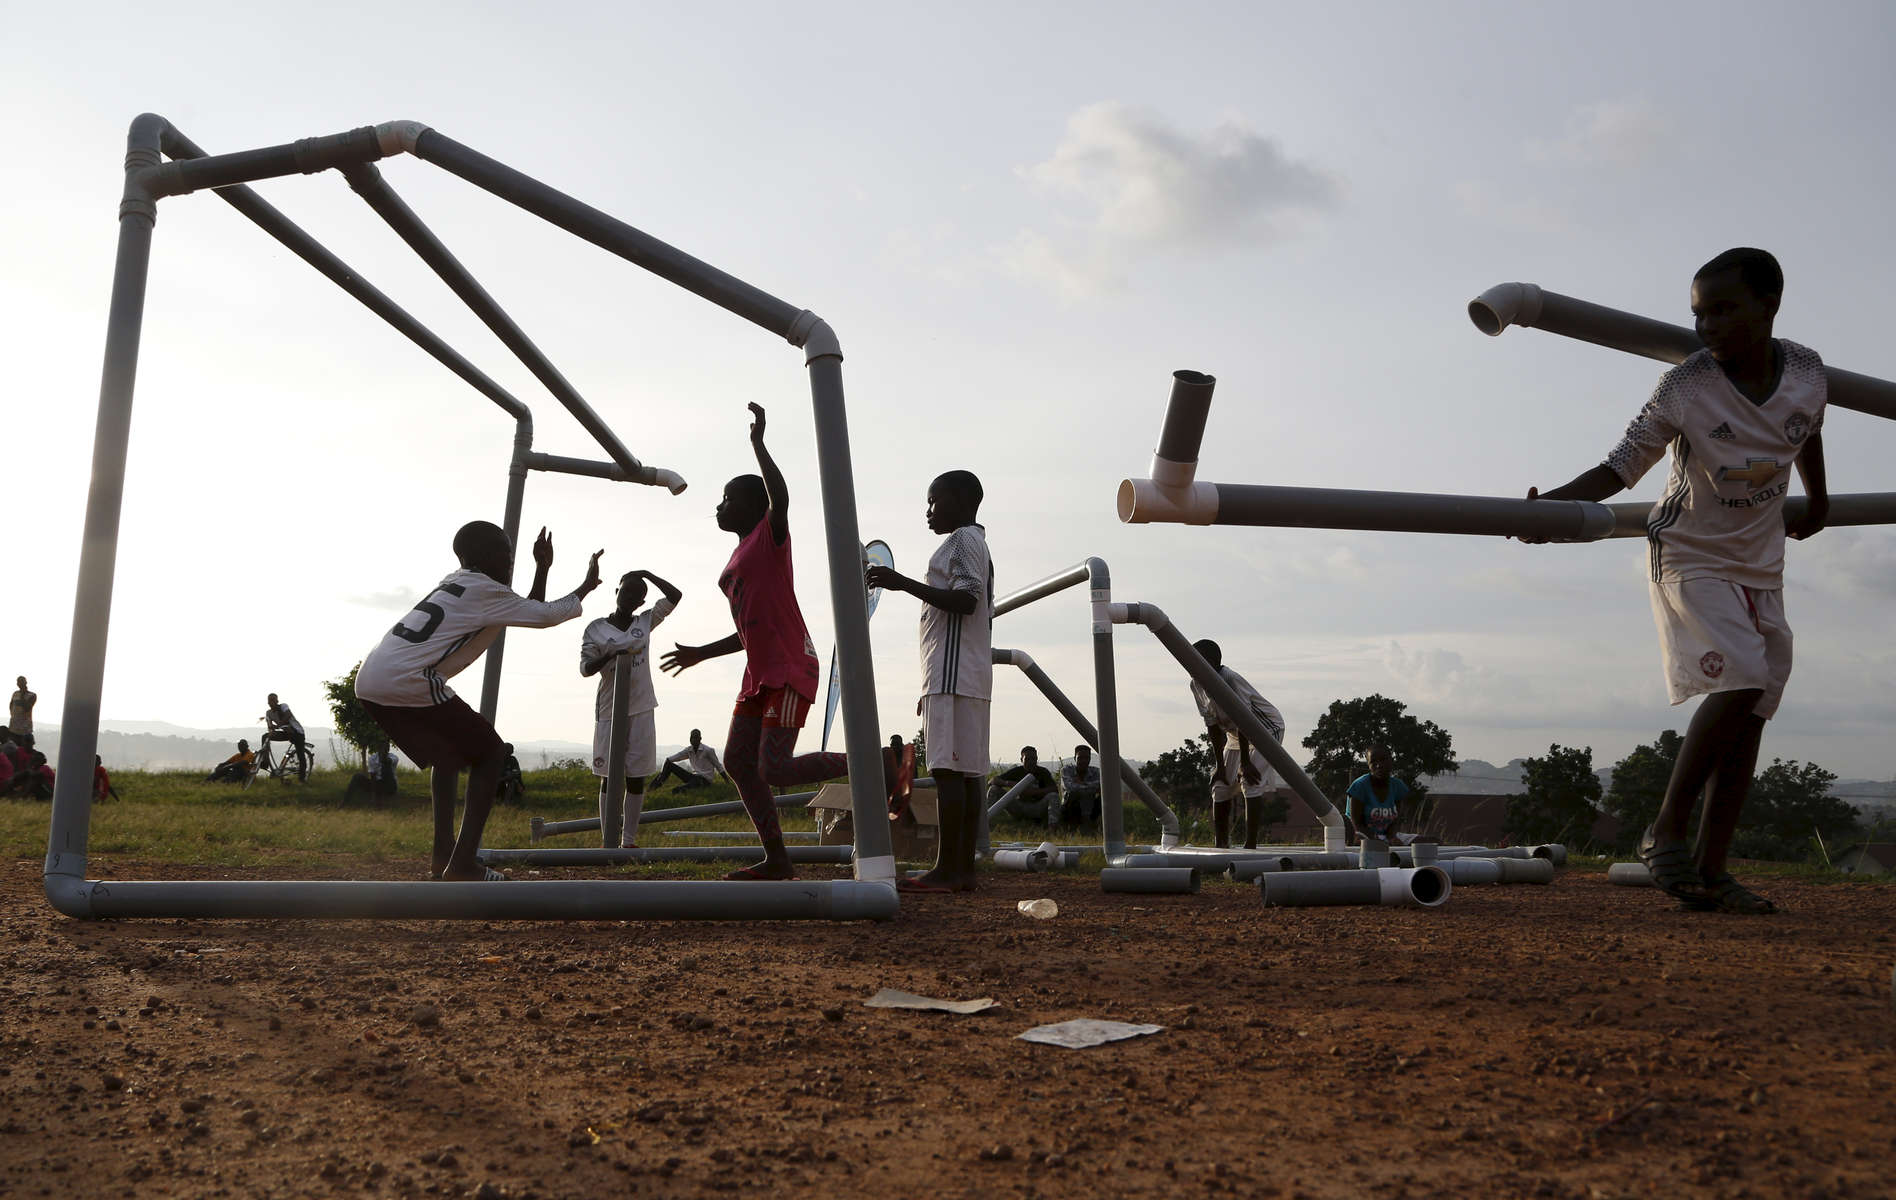 Girls unfold the soccer cage made of plastic water pipes at the end of a game during the {quote}Women take the Lead{quote} festival, a soccer event for Congolese refugee youth in Kampala, Uganda on December 13, 2018. Although Uganda is welcoming and host one of the largest population of refugees in the world, the life of refugees in Kampala, the capital, and the surrounding areas is very difficult, at best. Especially for youth, who have difficulties to access education because of financial reasons, and language barriers. In the slump of Nsambya, Soccer without Borders, an organization where most of the staff are also refugees, offer education and soccer training for these youths, helping them building strength and dealing with trauma. A special emphasis is given to empowering young women through that sport, when parents are often reluctant to let their girls play soccer. They fear they might become too masculine and would rather have their girls stay and help at home.